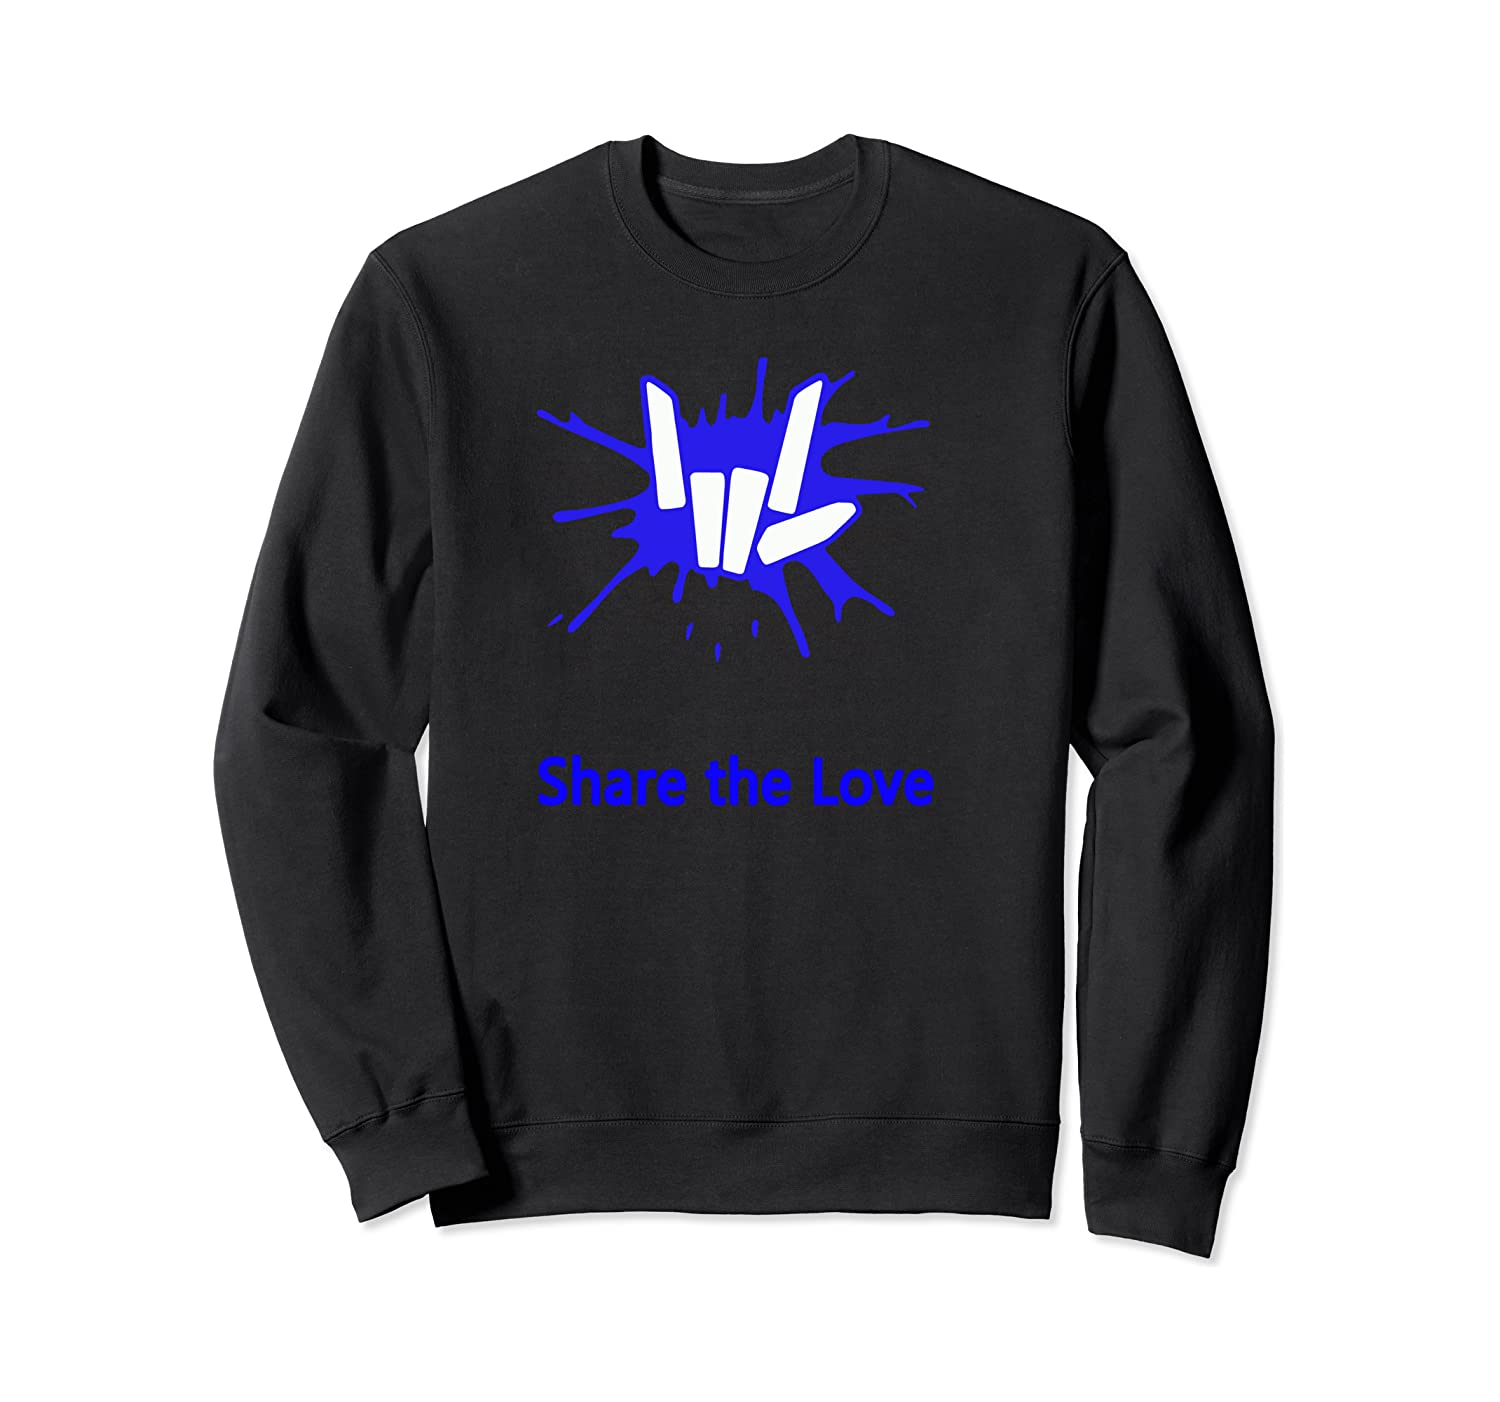 Share And Love For Beautiful Shirts Crewneck Sweater